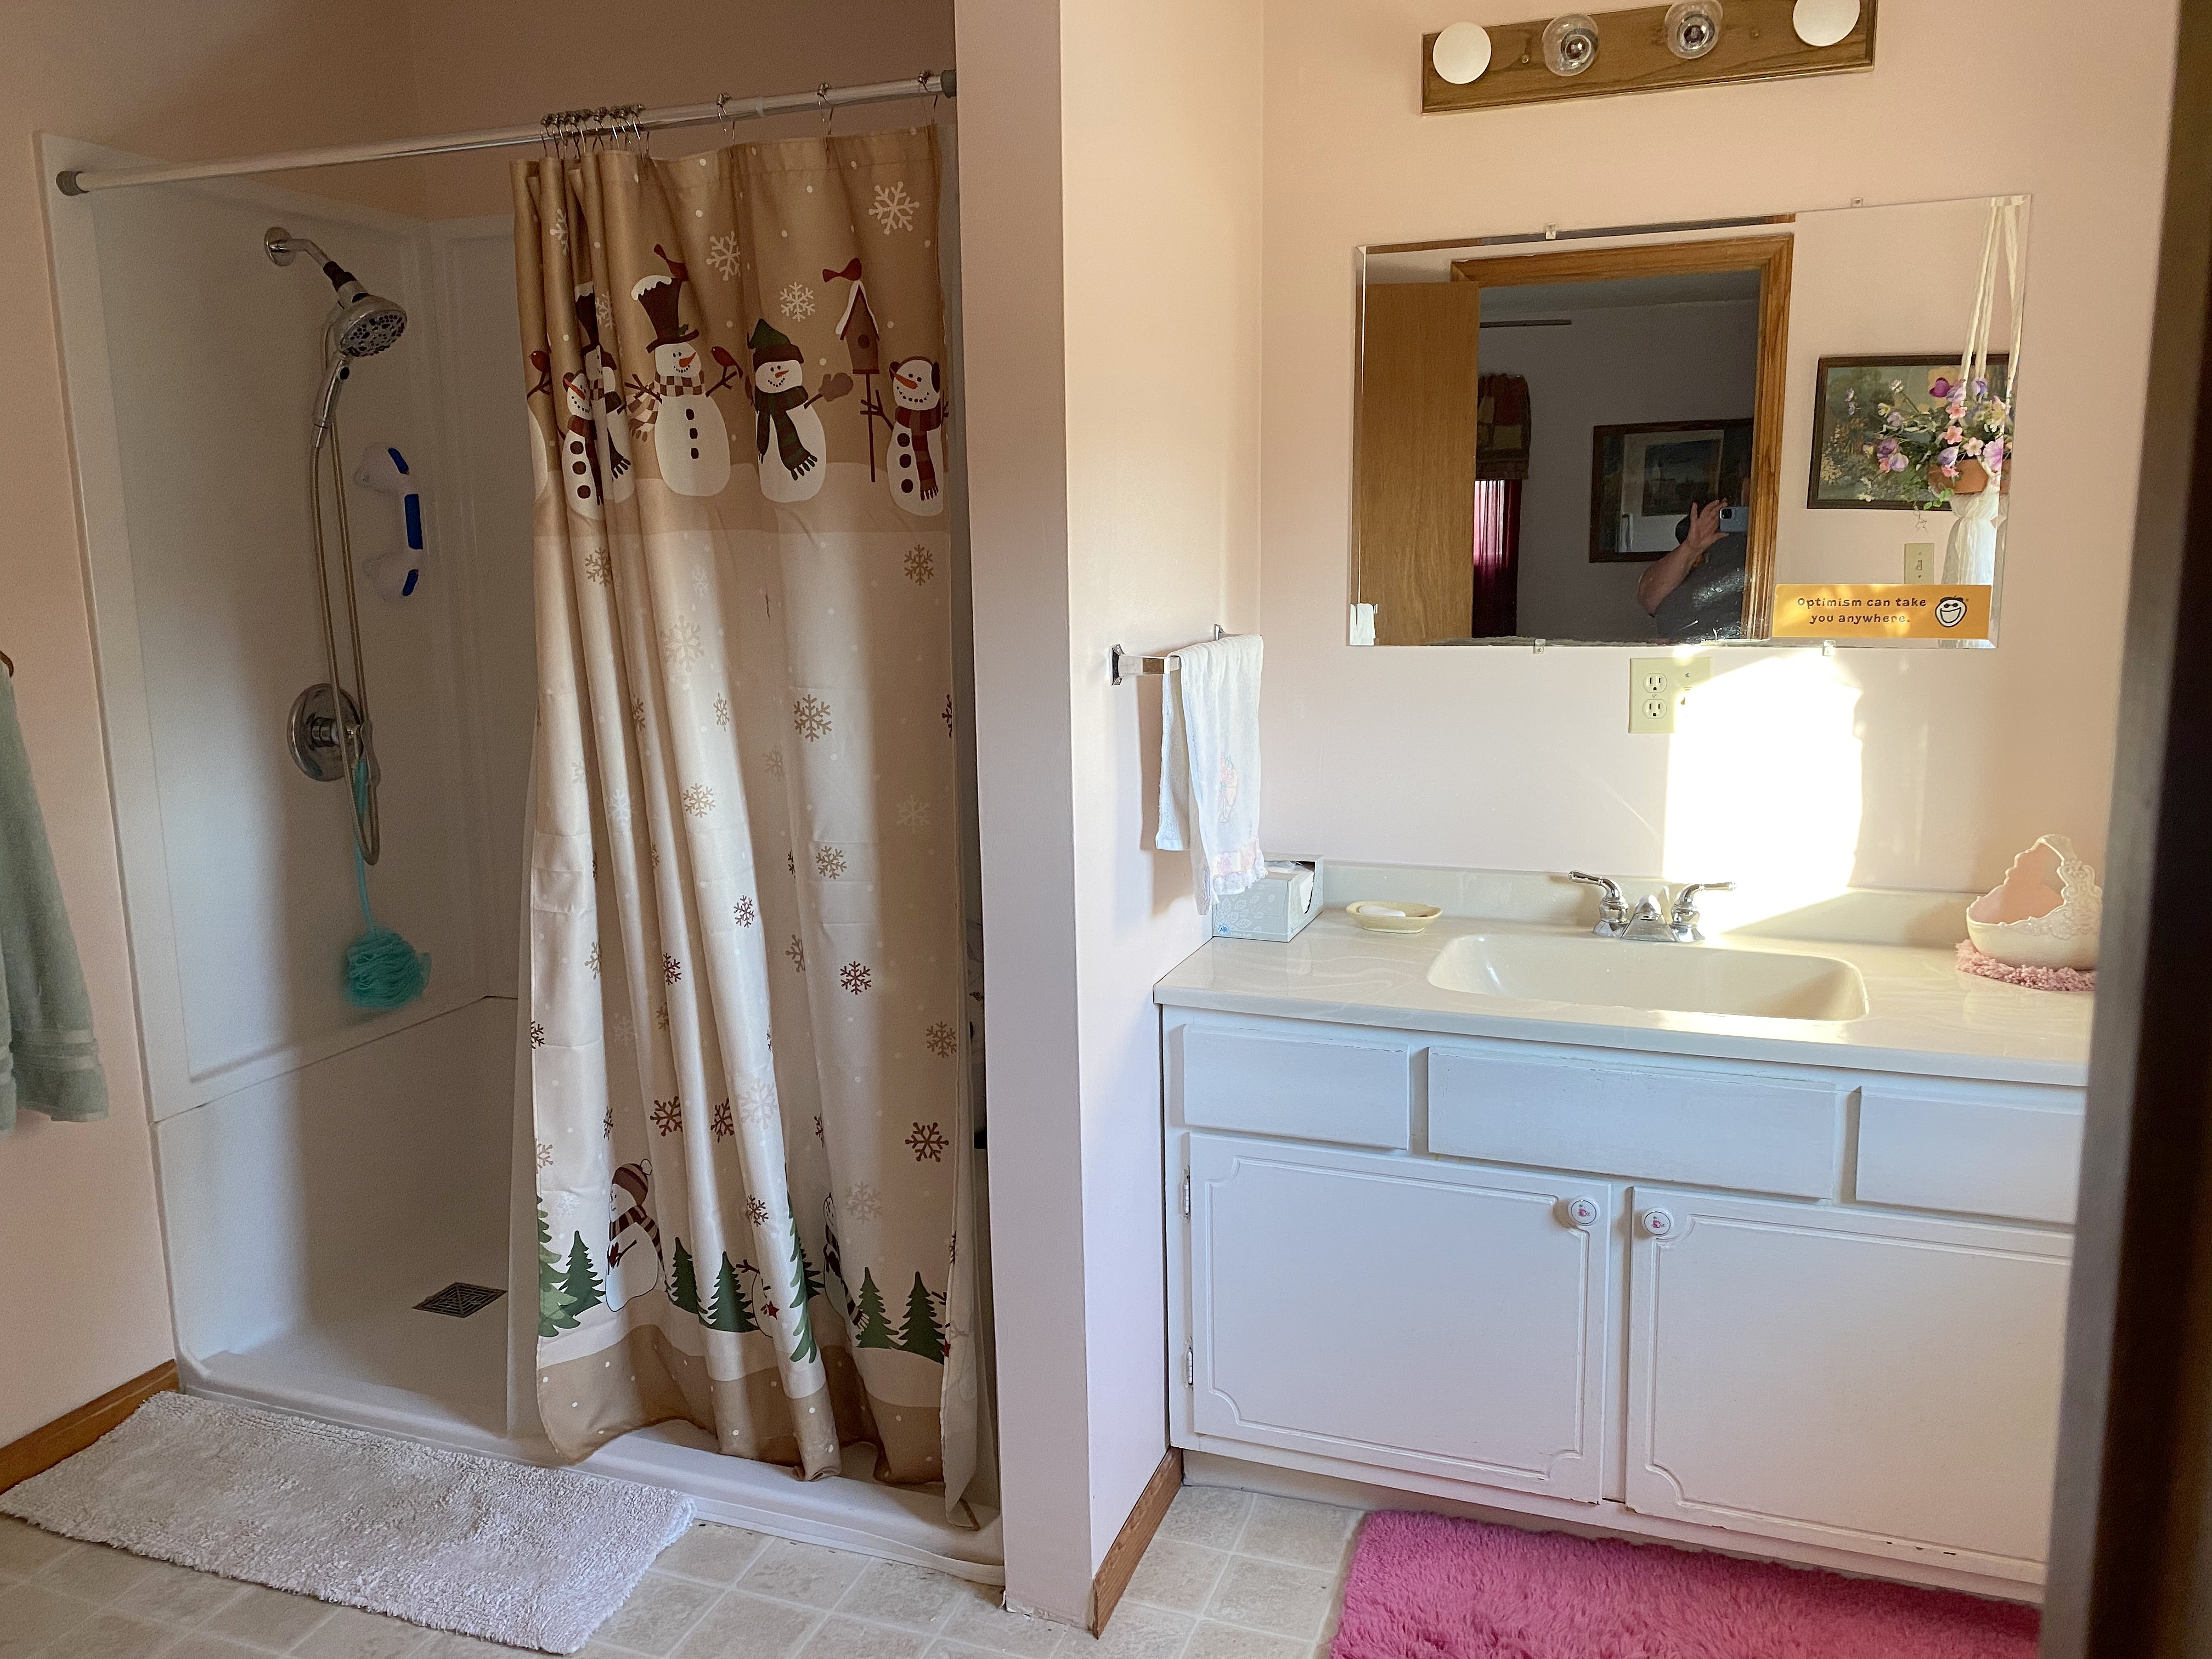 Houses For Rent In Council Bluffs Ia Rentdigs Com